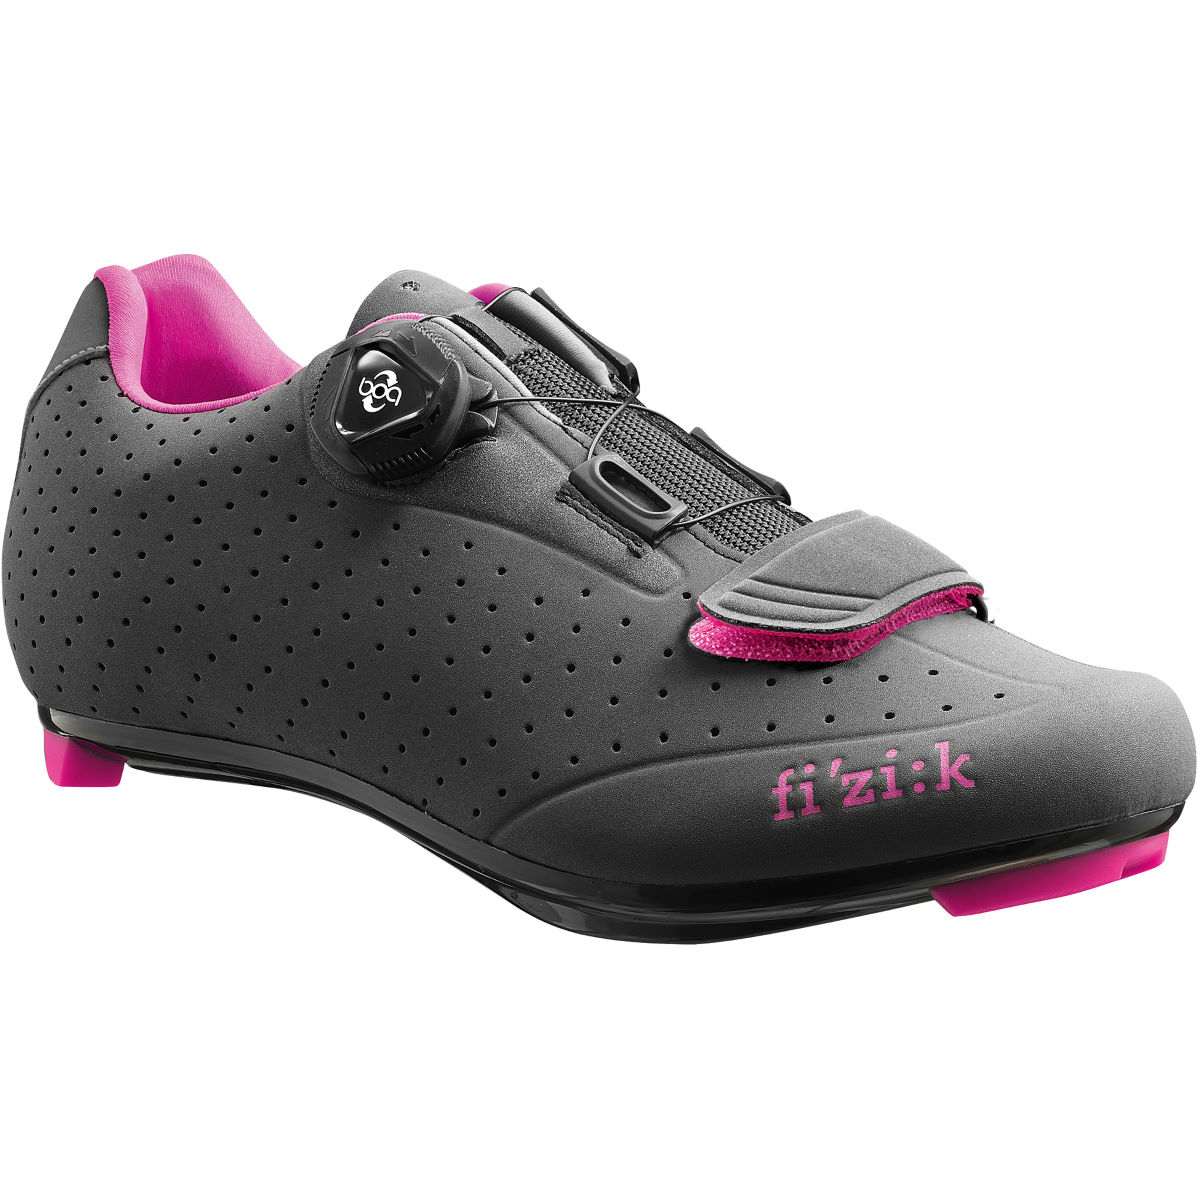 Fizik Women's R5B Donna Road Shoe - 39 Anthracite/Pink | Road Shoes